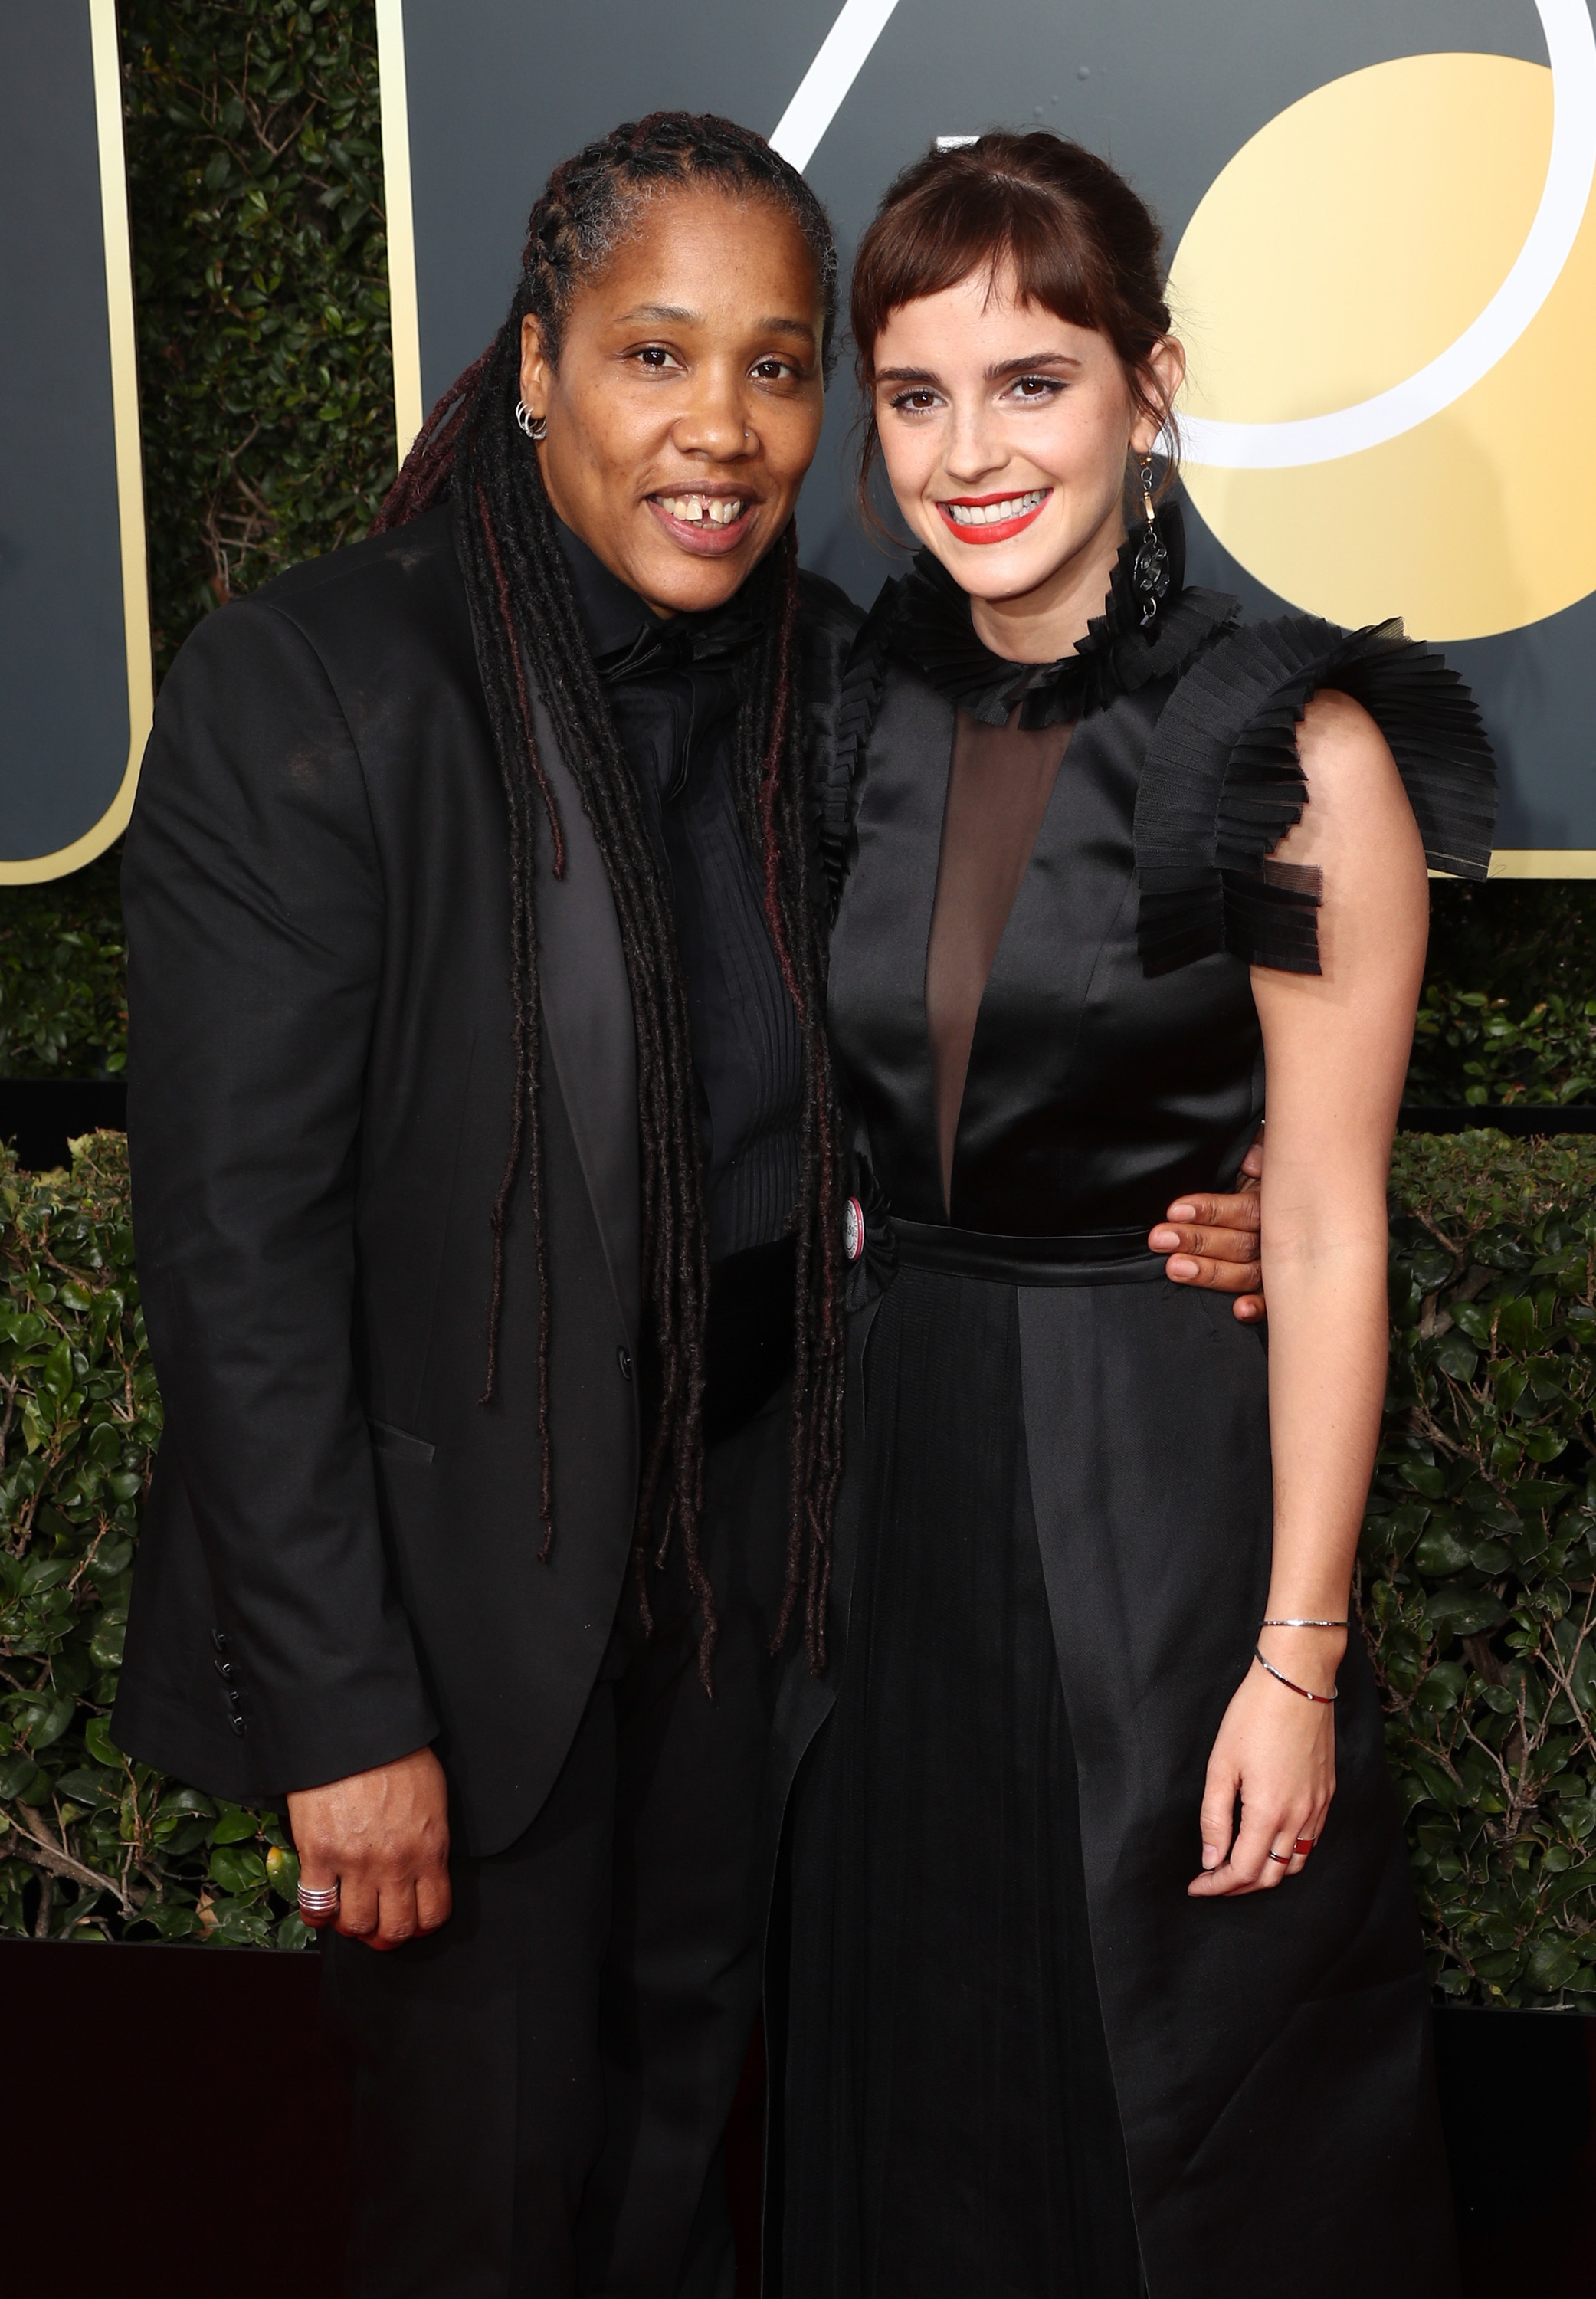 Emma Watson and Marai Larasi, executive director of Imkaan, a British network of organizations working to end violence against black and minority women, attend The 75th Annual Golden Globe Awards at The Beverly Hilton Hotel in Beverly Hills, California on Jan. 7, 2018.